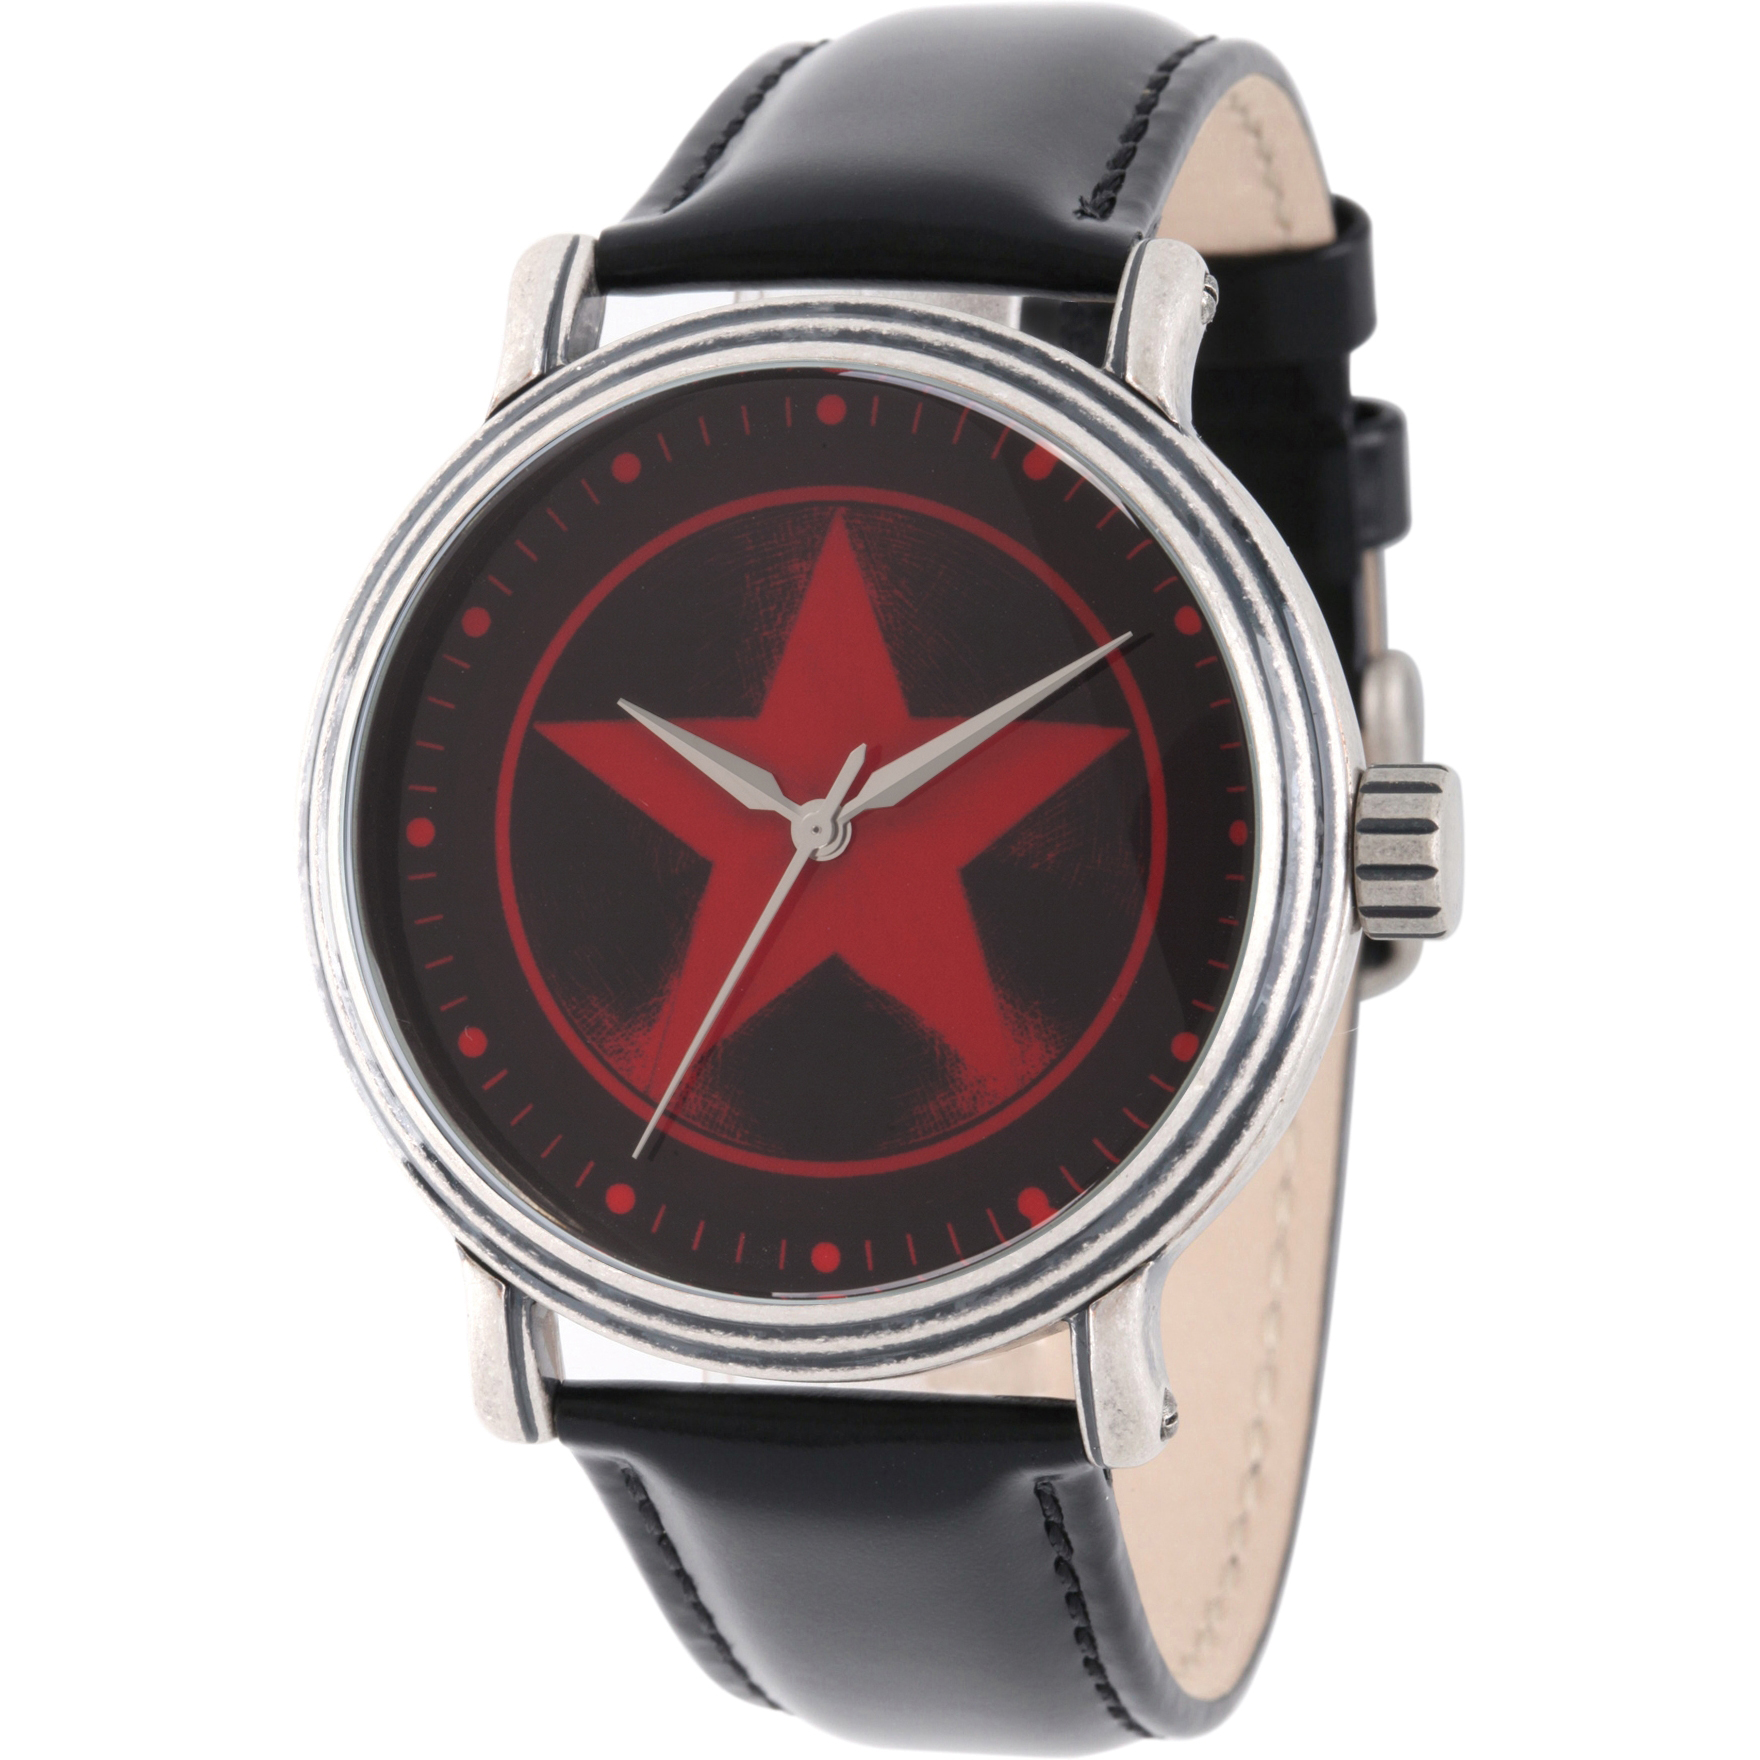 Avengers Captain America Men's' Antique Silver Alloy Vintage Watch, Black Leather Strap